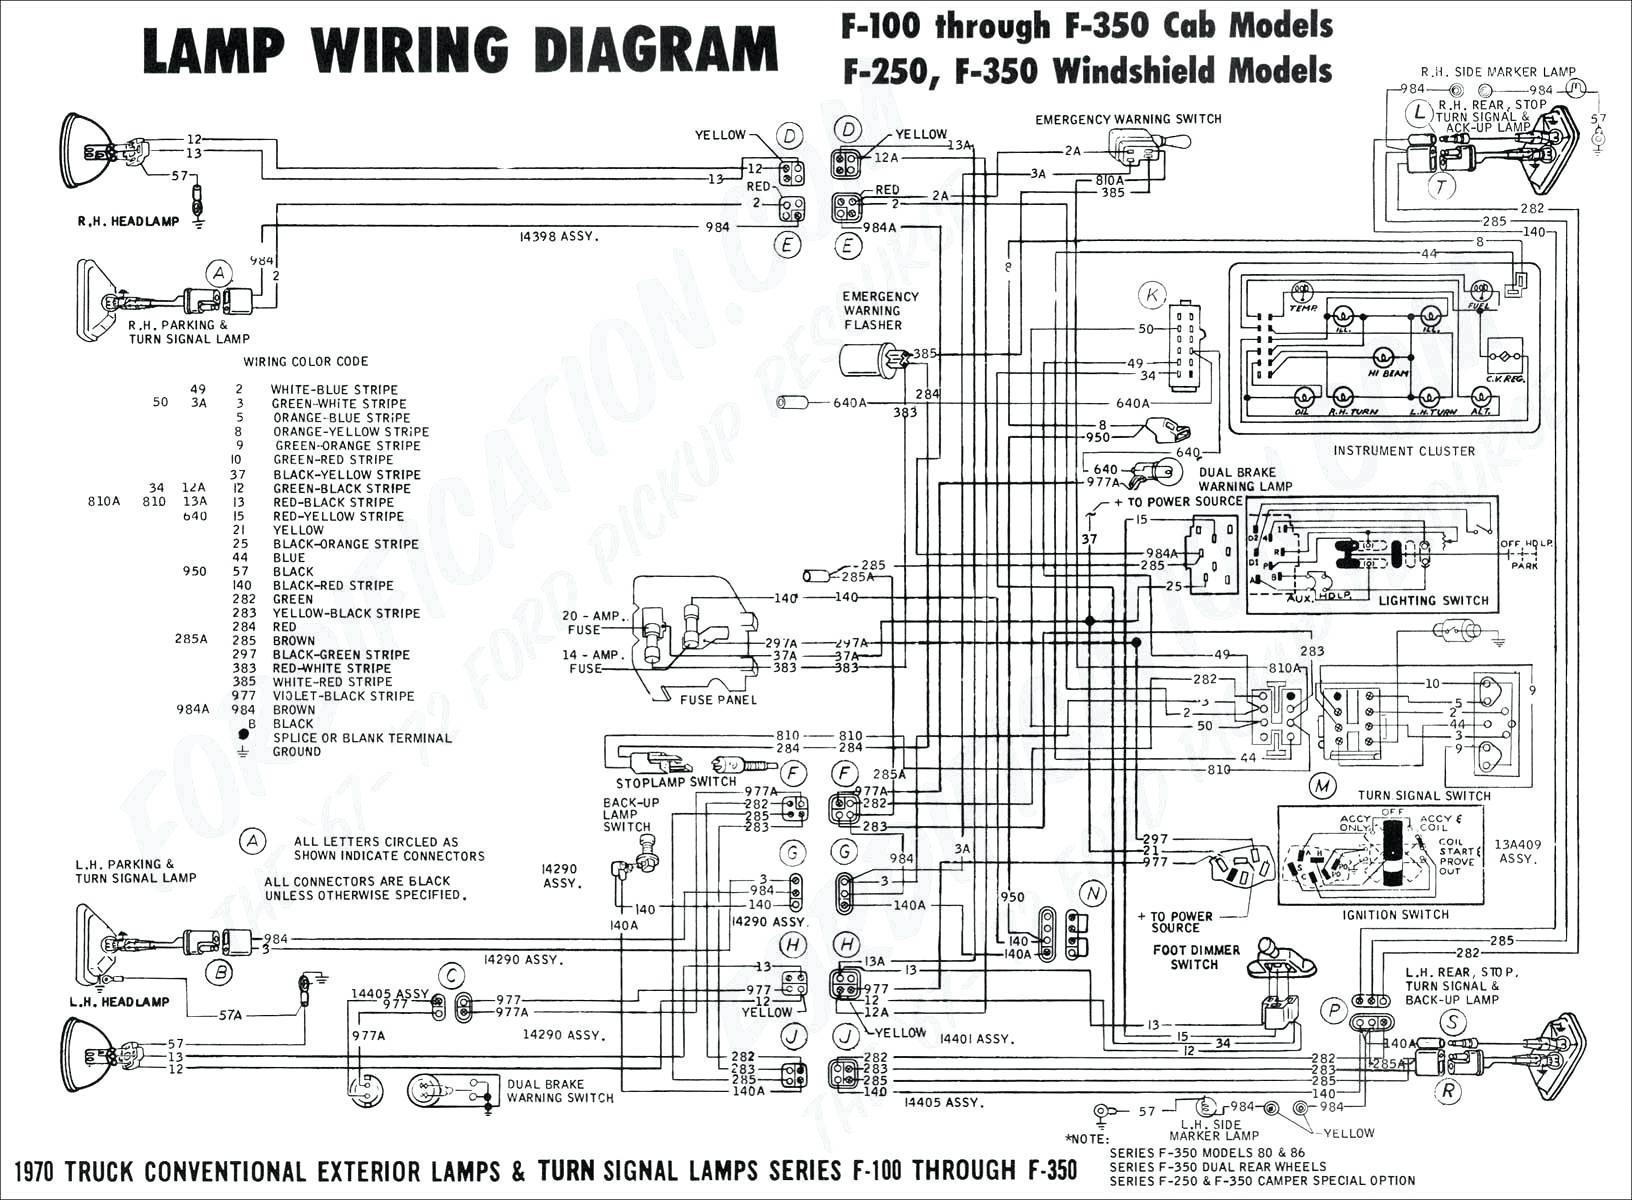 2007 Hyundai Santa Fe Engine Diagram Sensor Wiring Diagram 2008 F250 Worksheet and Wiring Diagram • Of 2007 Hyundai Santa Fe Engine Diagram Wiring Diagram 2003 Hyundai Tiburon 2 0l Schematics Wiring Diagrams •